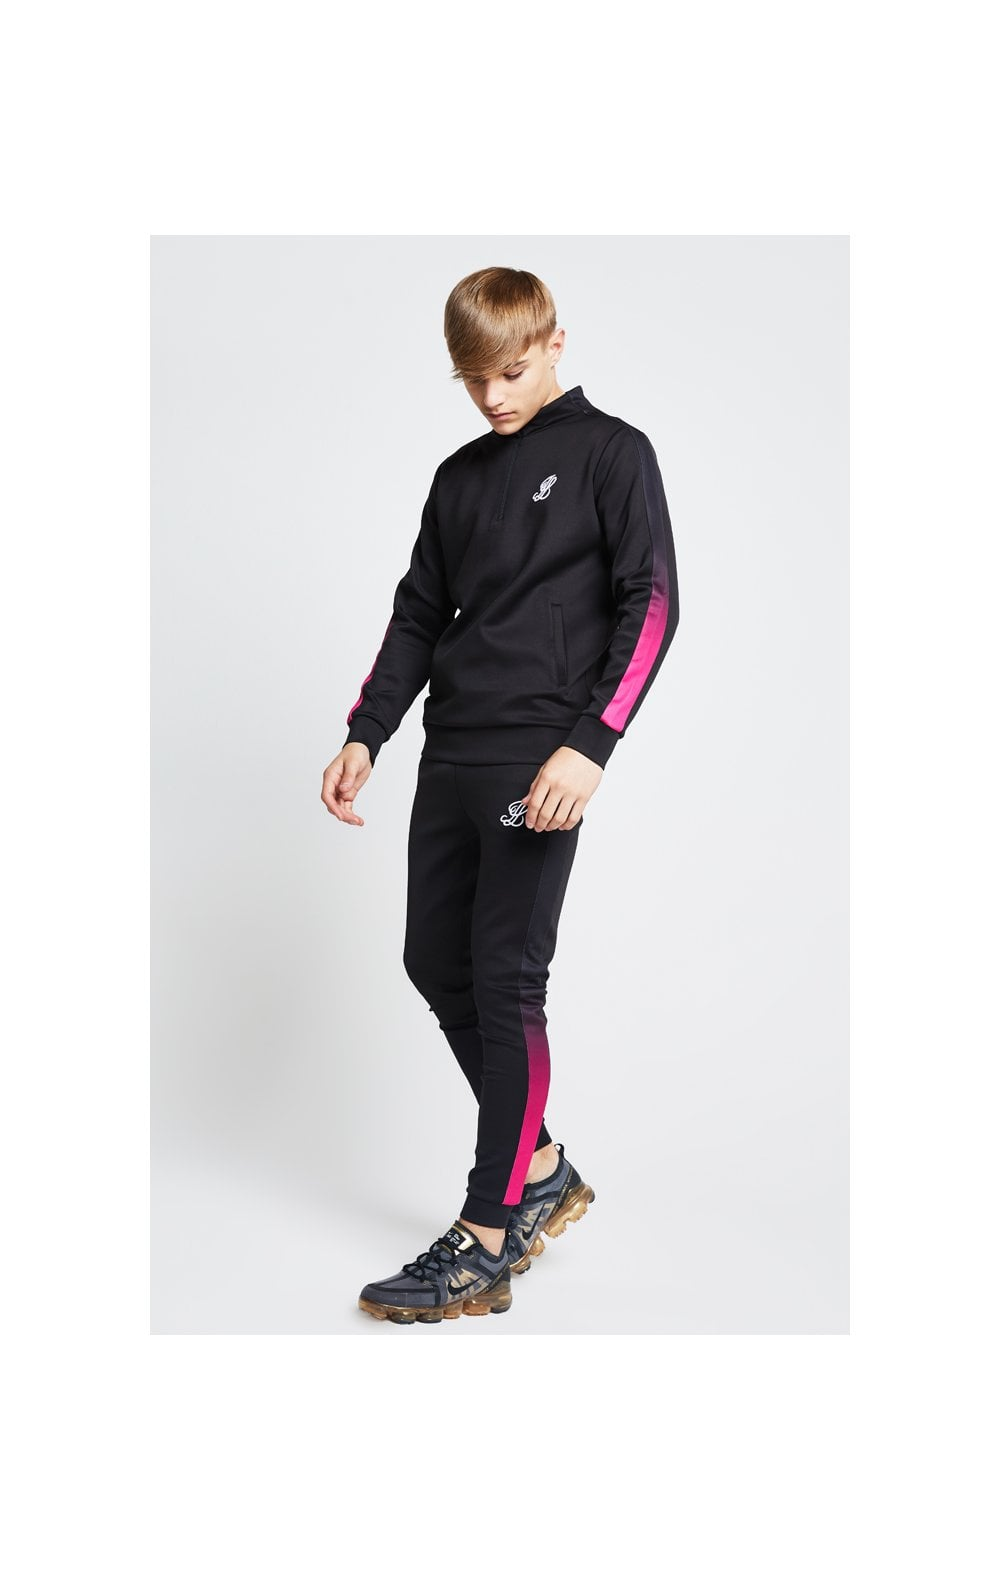 Load image into Gallery viewer, Illusive London Fade Panel Funnel Neck 1/4 Zip Hoodie - Black & Pink (5)